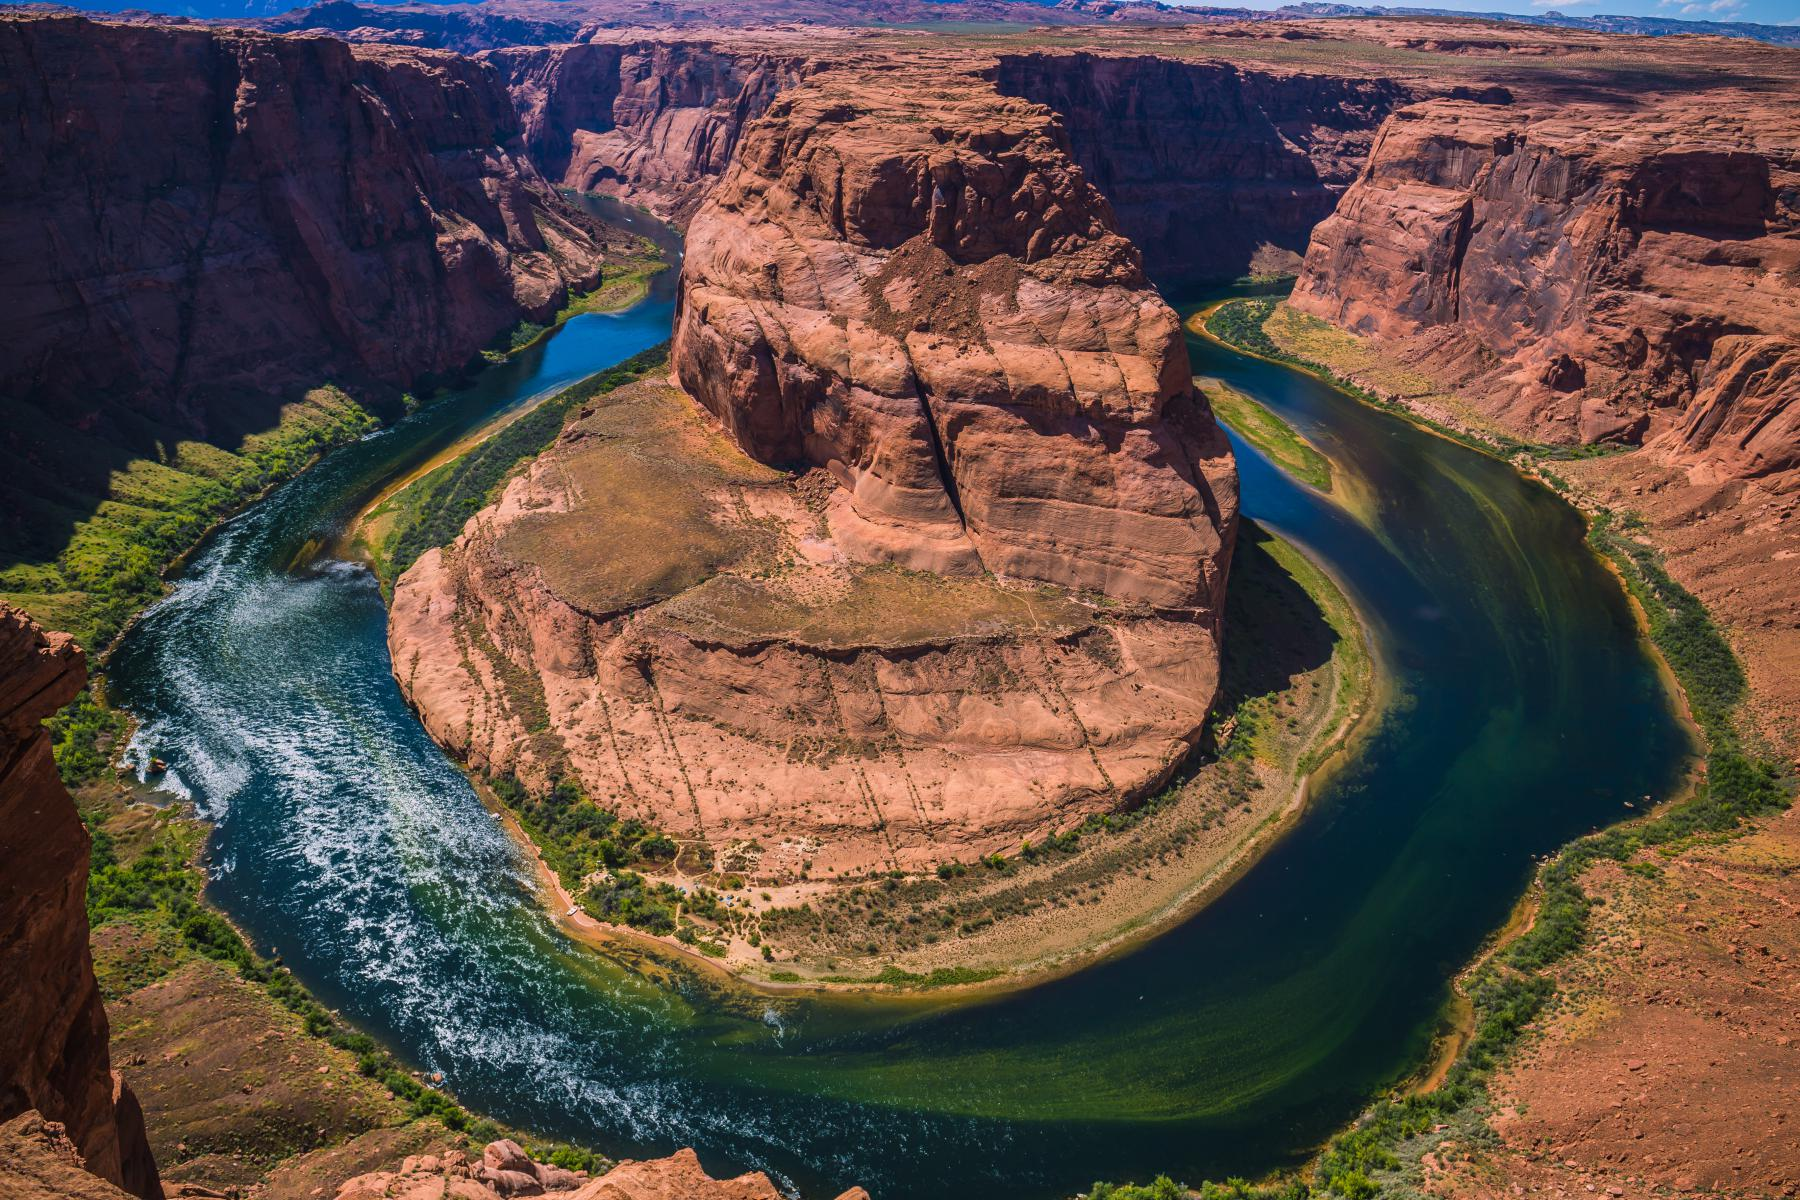 view of the Colorado River at Horseshoe Bend